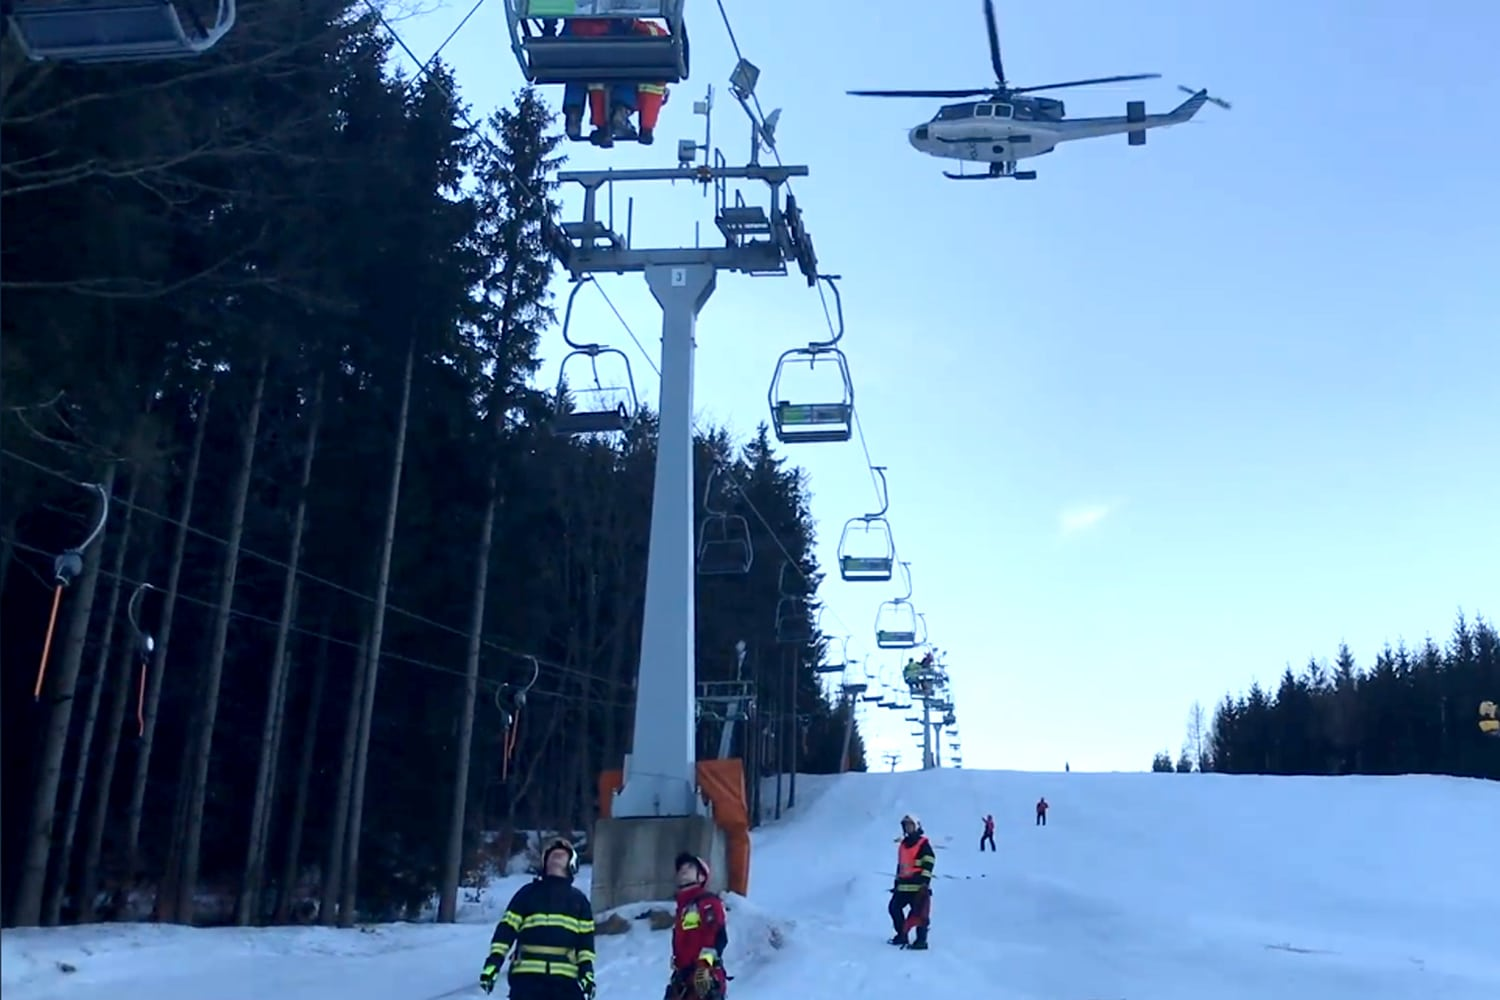 VIDEO: Czech emergency responders rescue 40 skiers trapped on chairlift